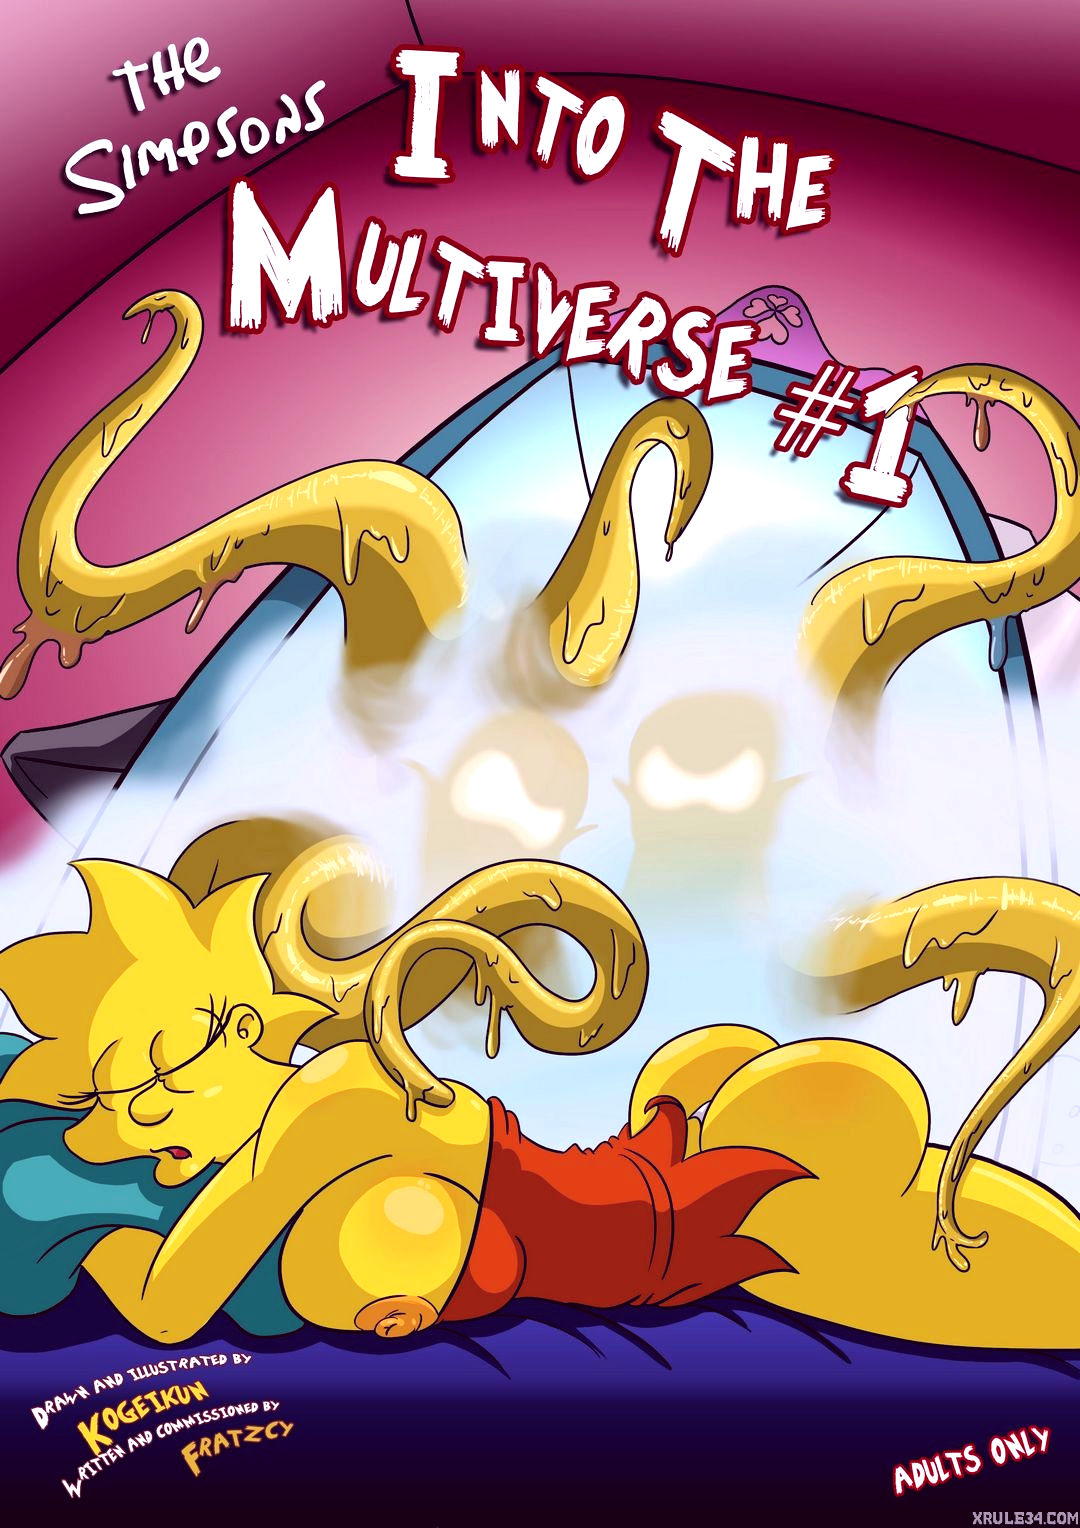 The simpsons into the multiverse porn comic picture 1